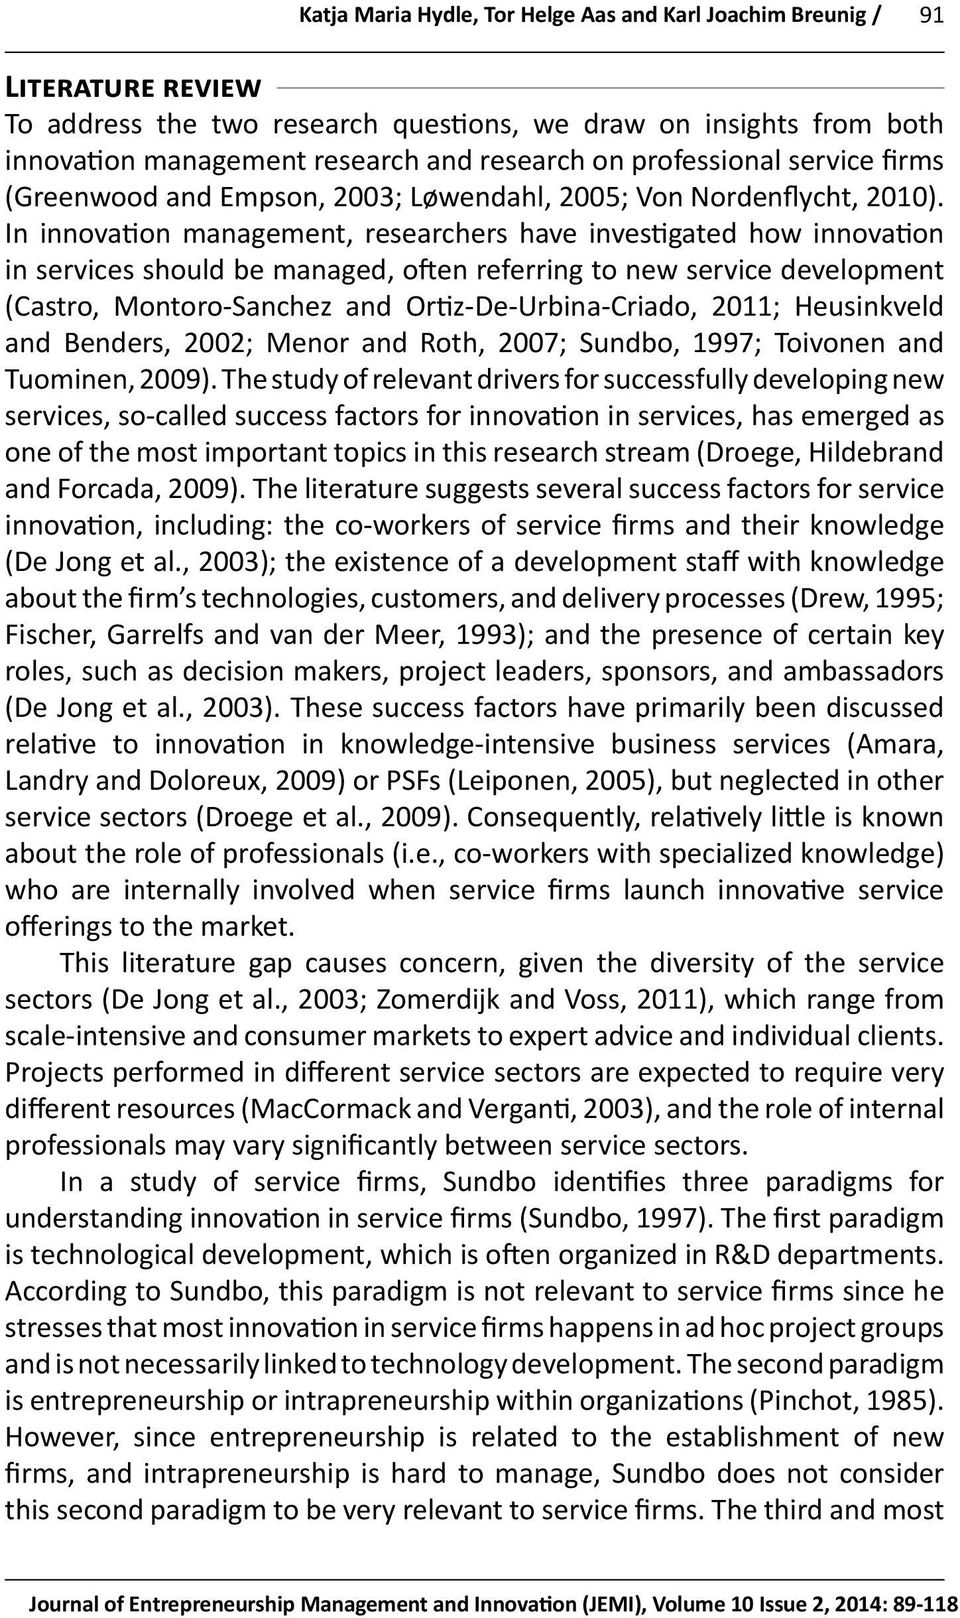 In innovation management, researchers have investigated how innovation in services should be managed, often referring to new service development (Castro, Montoro-Sanchez and Ortiz-De-Urbina-Criado,